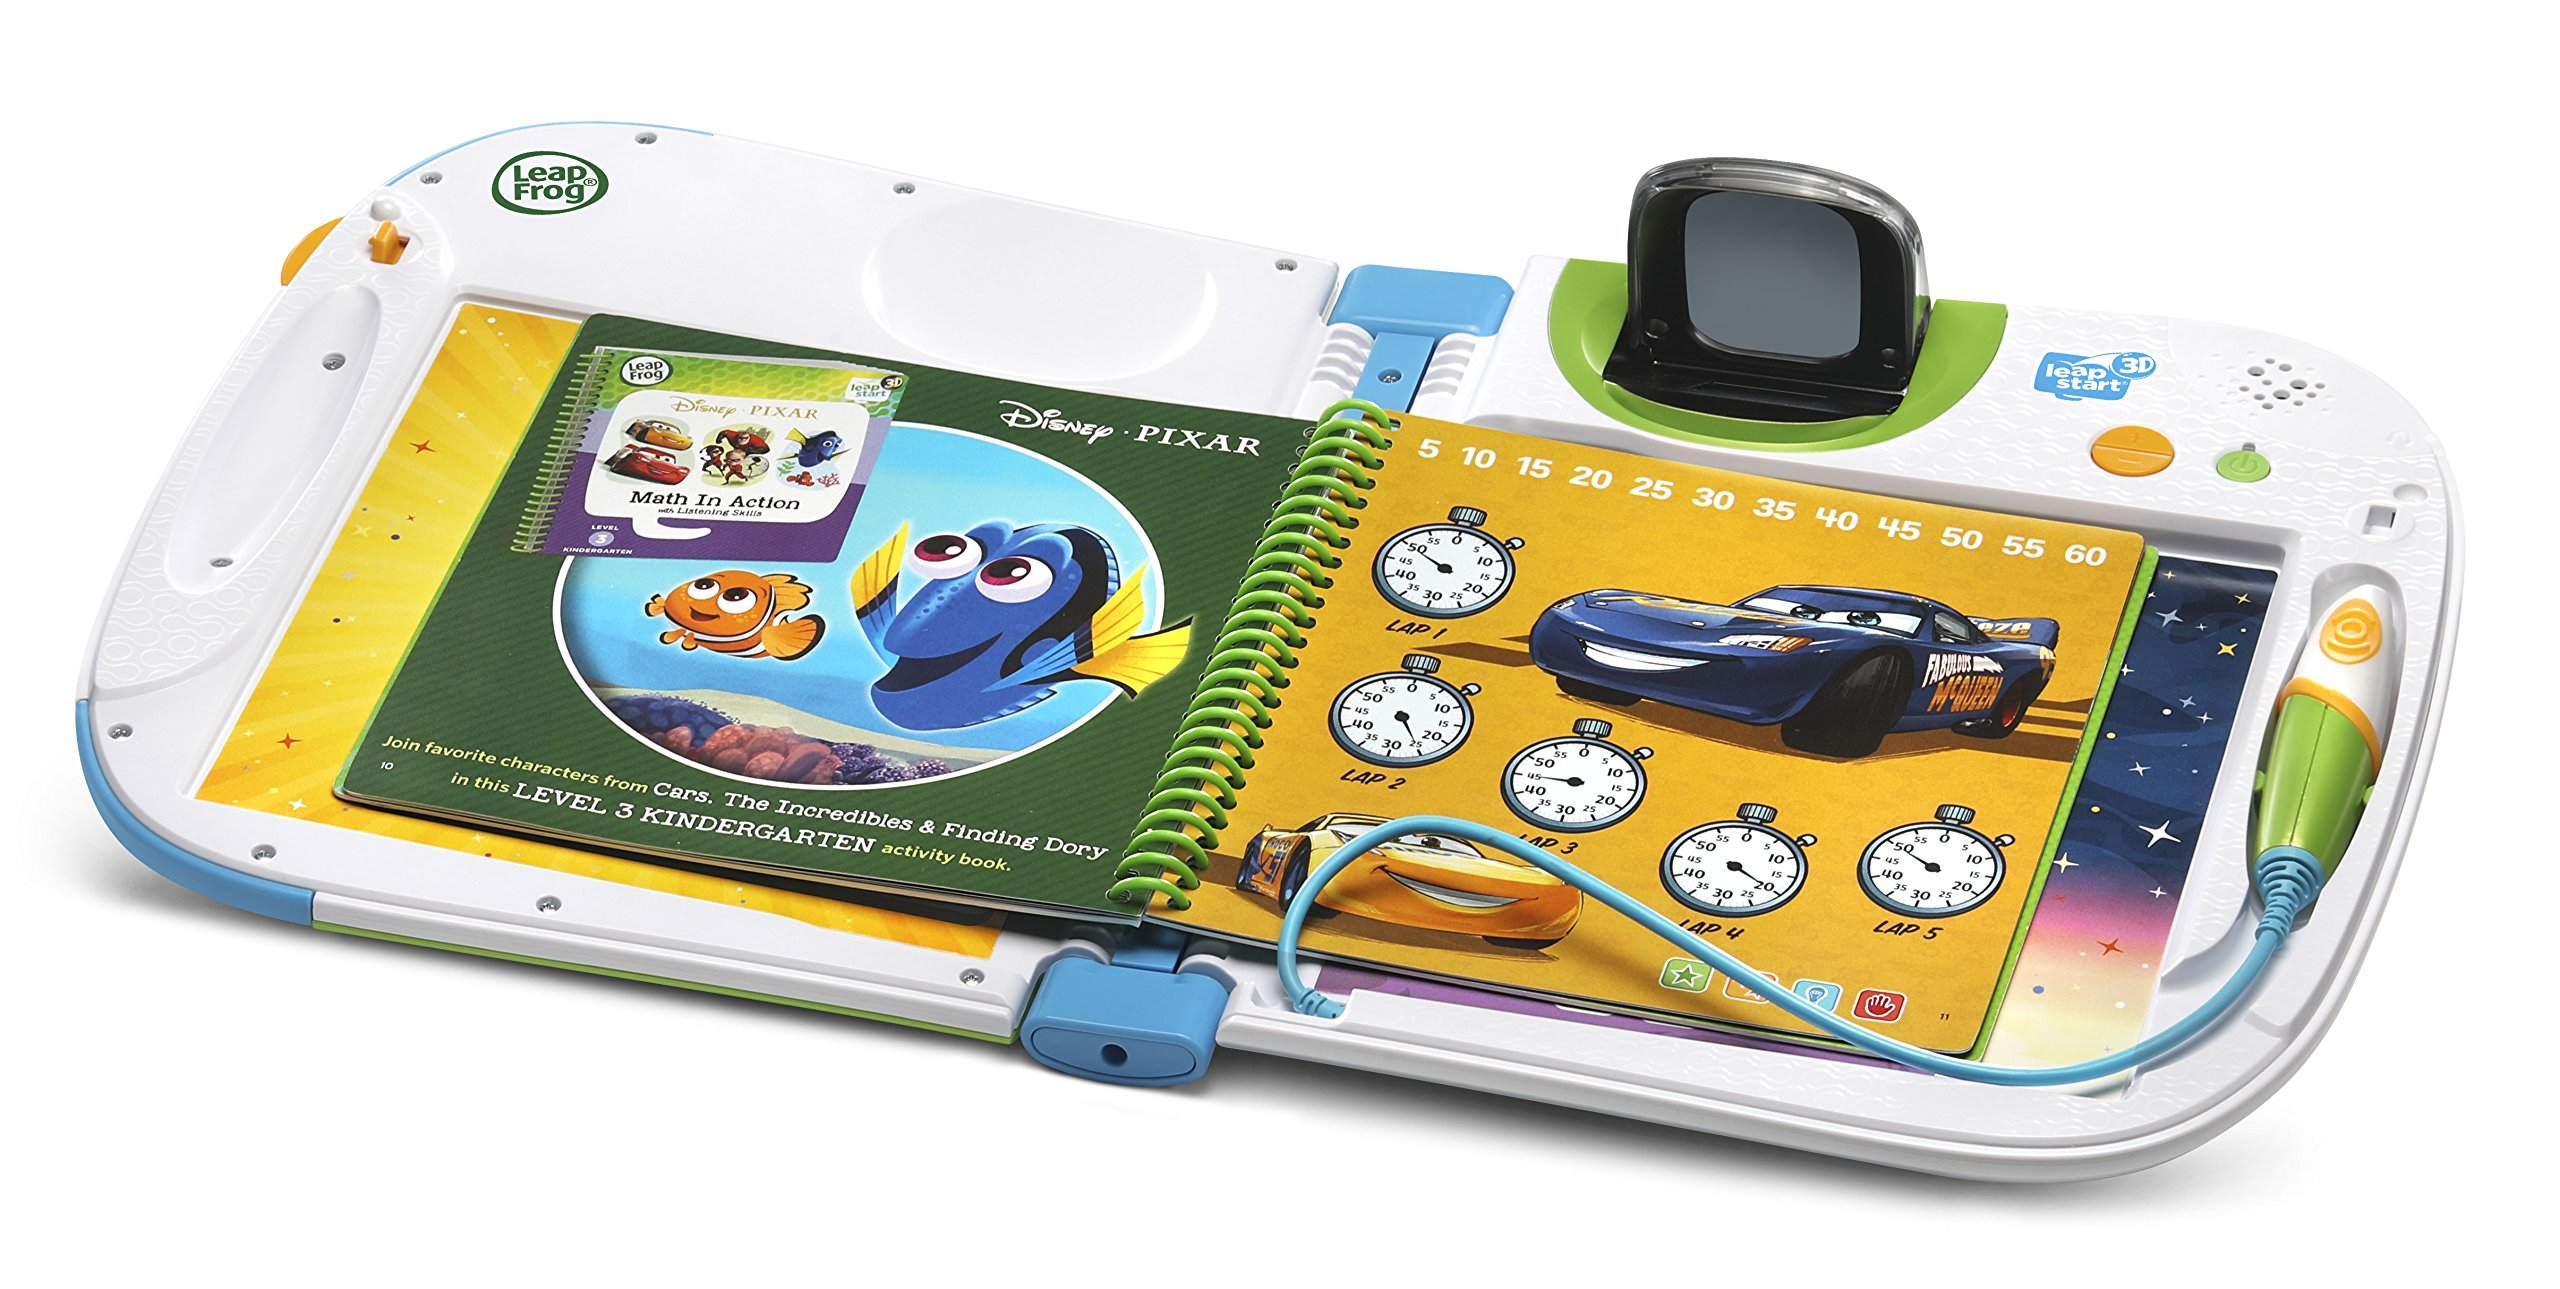 LeapFrog Leapstart 3D Interactive Learning System, Green by LeapFrog (Image #9)